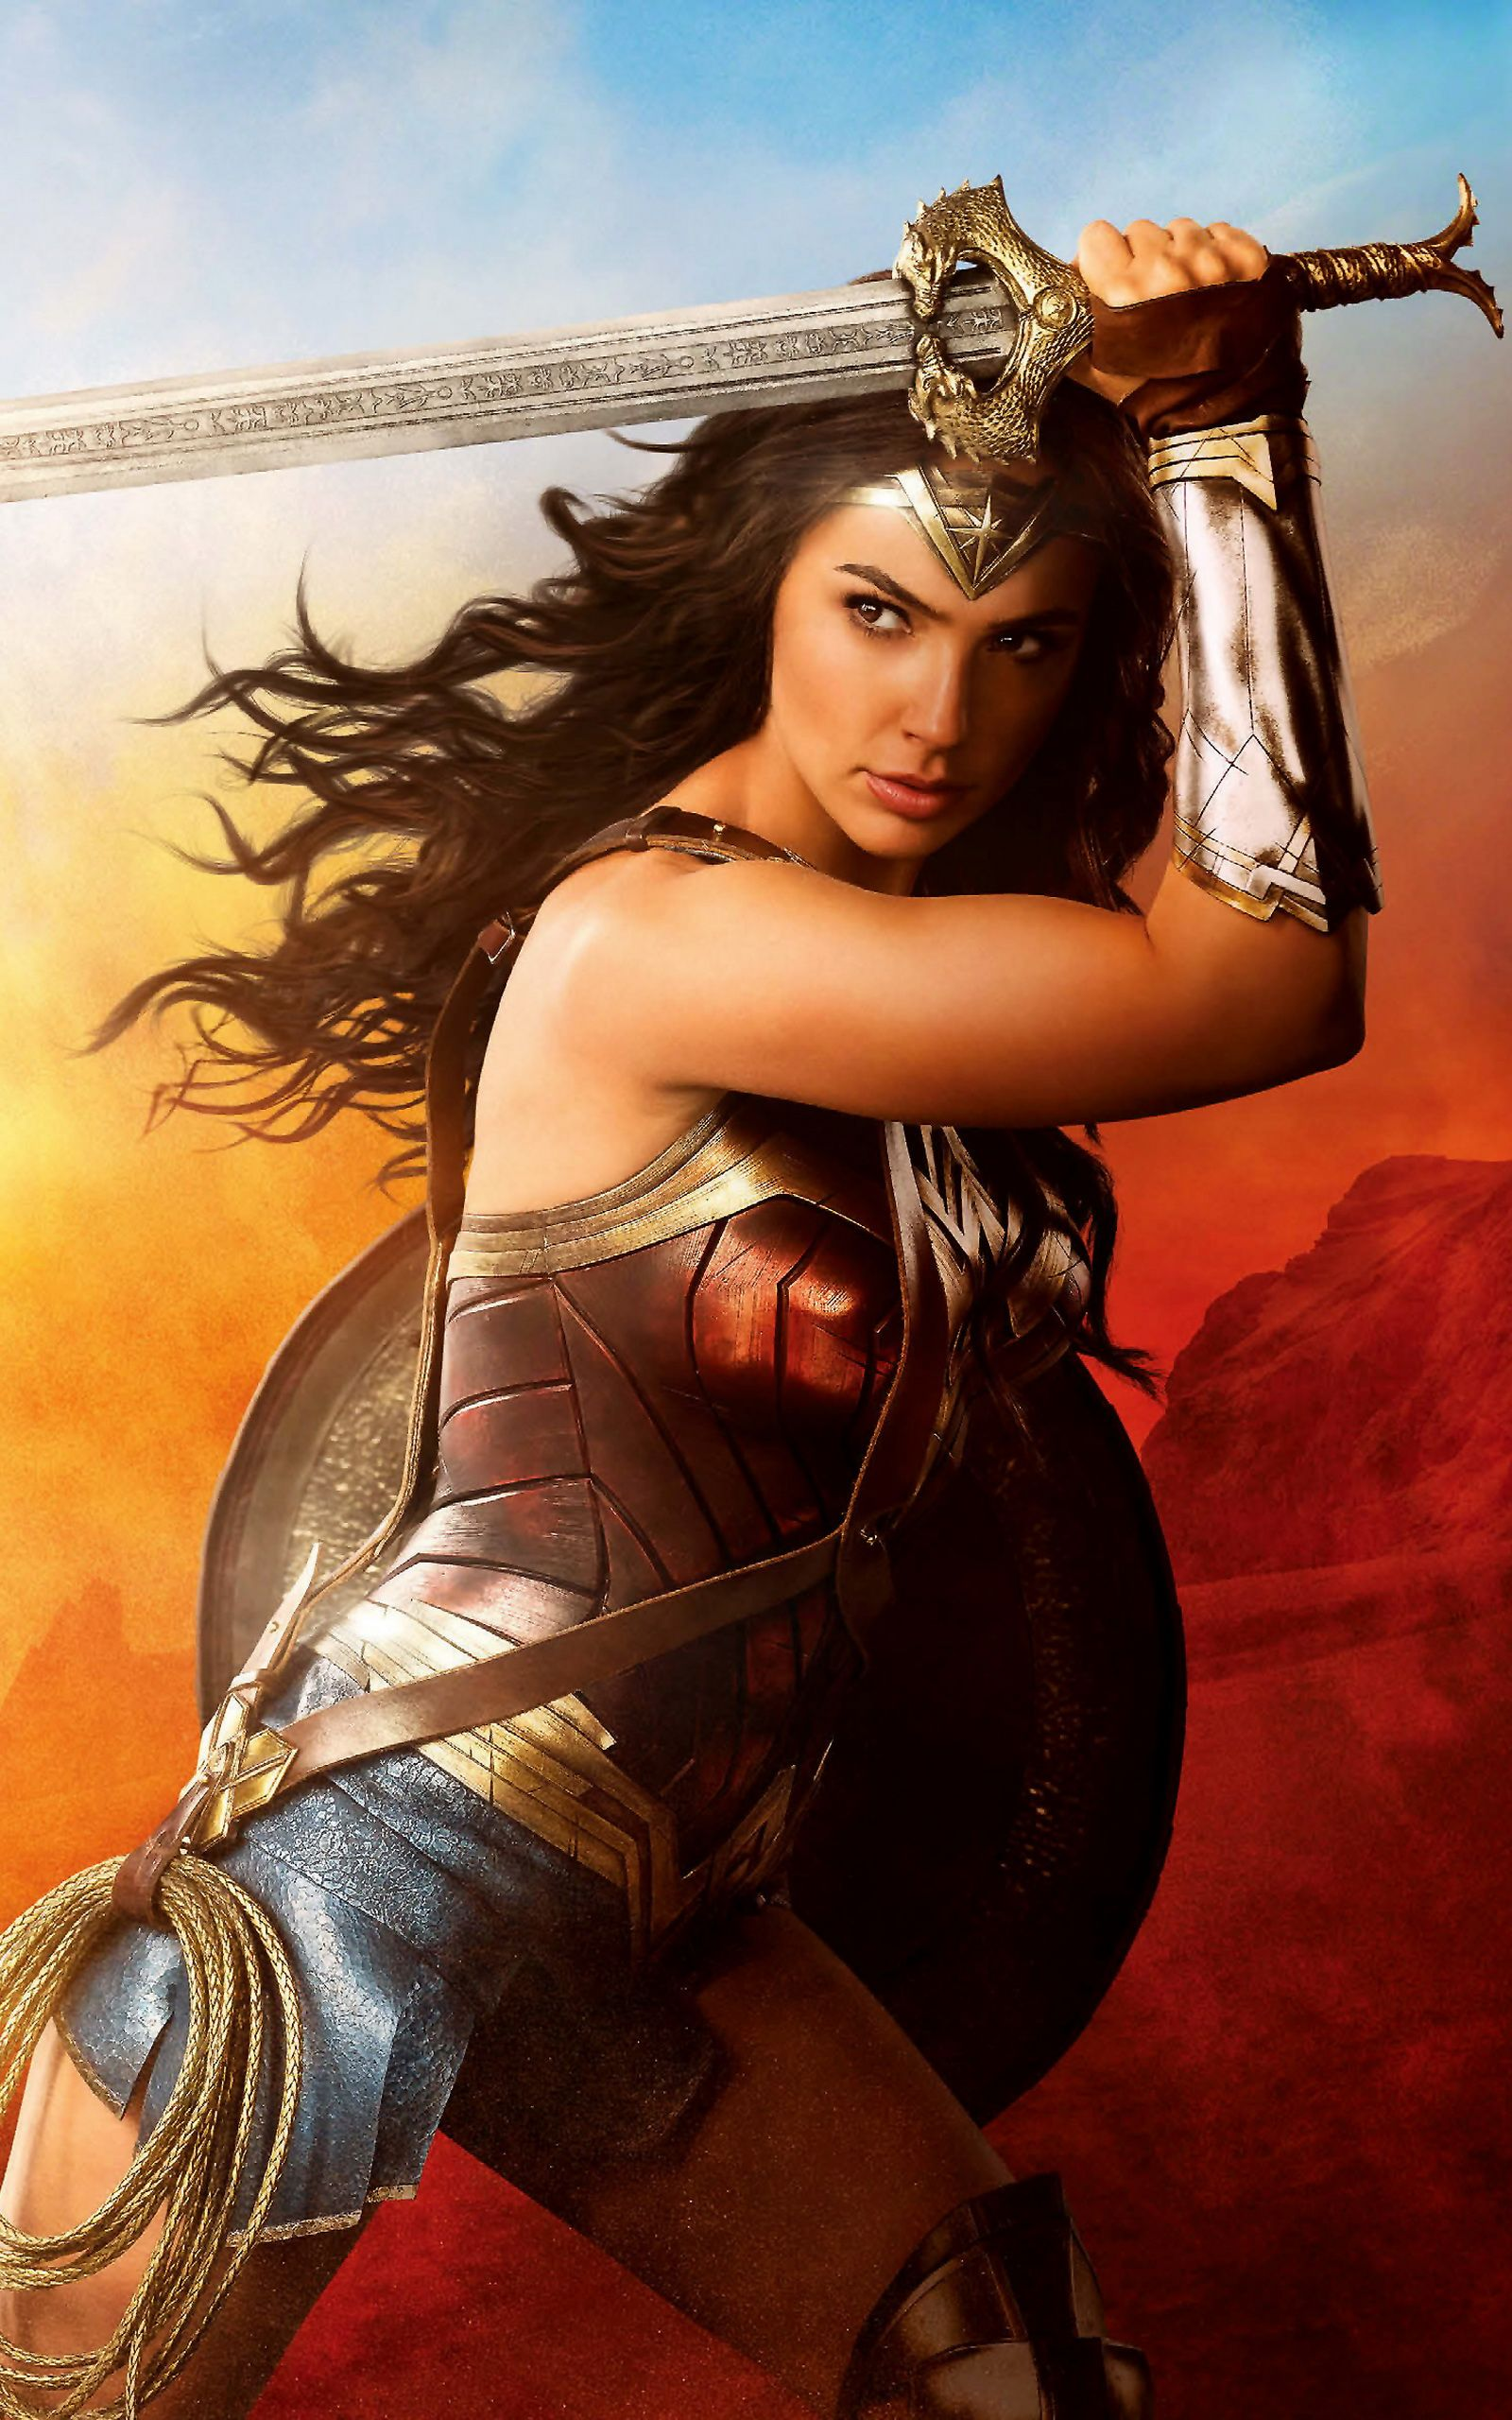 Wonder Woman Wallpaper 1080p Posted By Ryan Cunningham